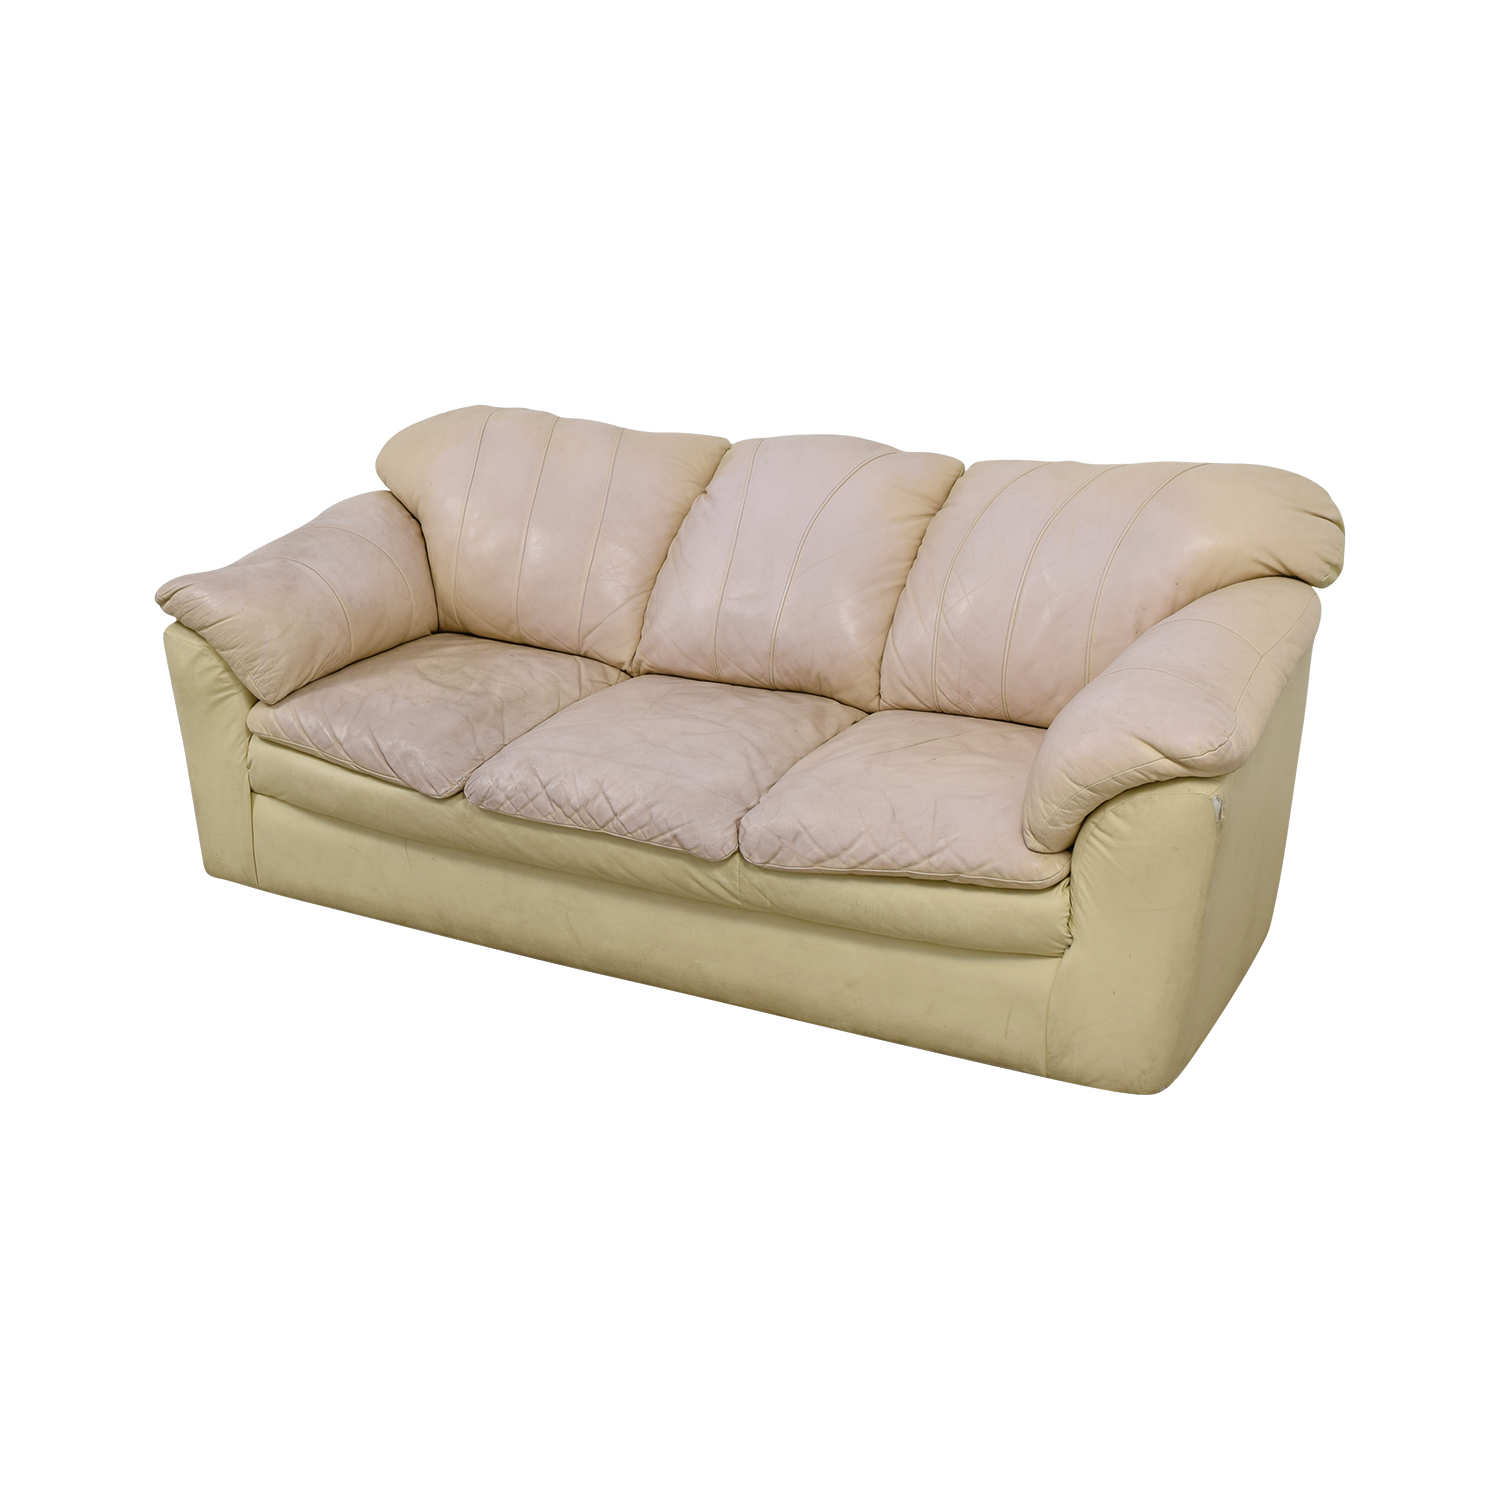 Cream Leather Pillowed Arm Sofa for sale